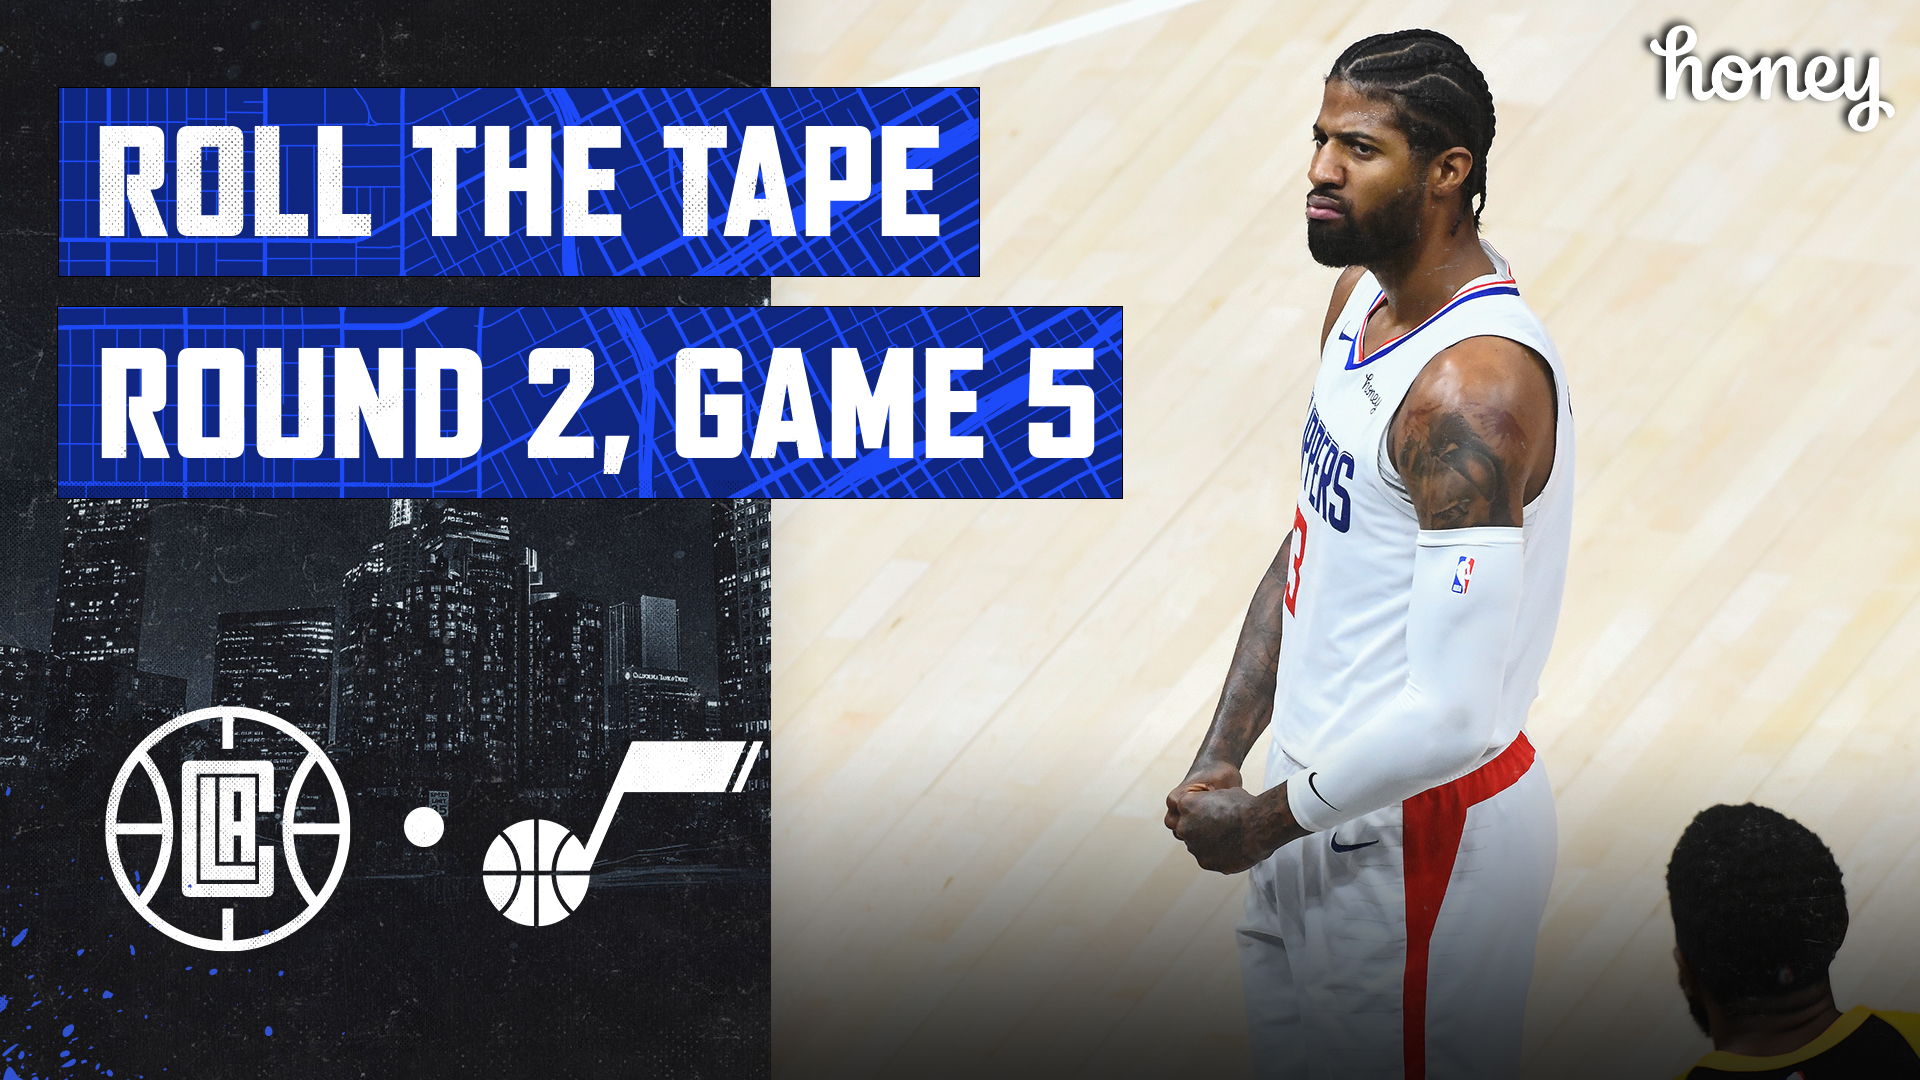 Roll The Tape | Clippers Weather Storm in Utah and Secure Game 5 Win (6.16.21)